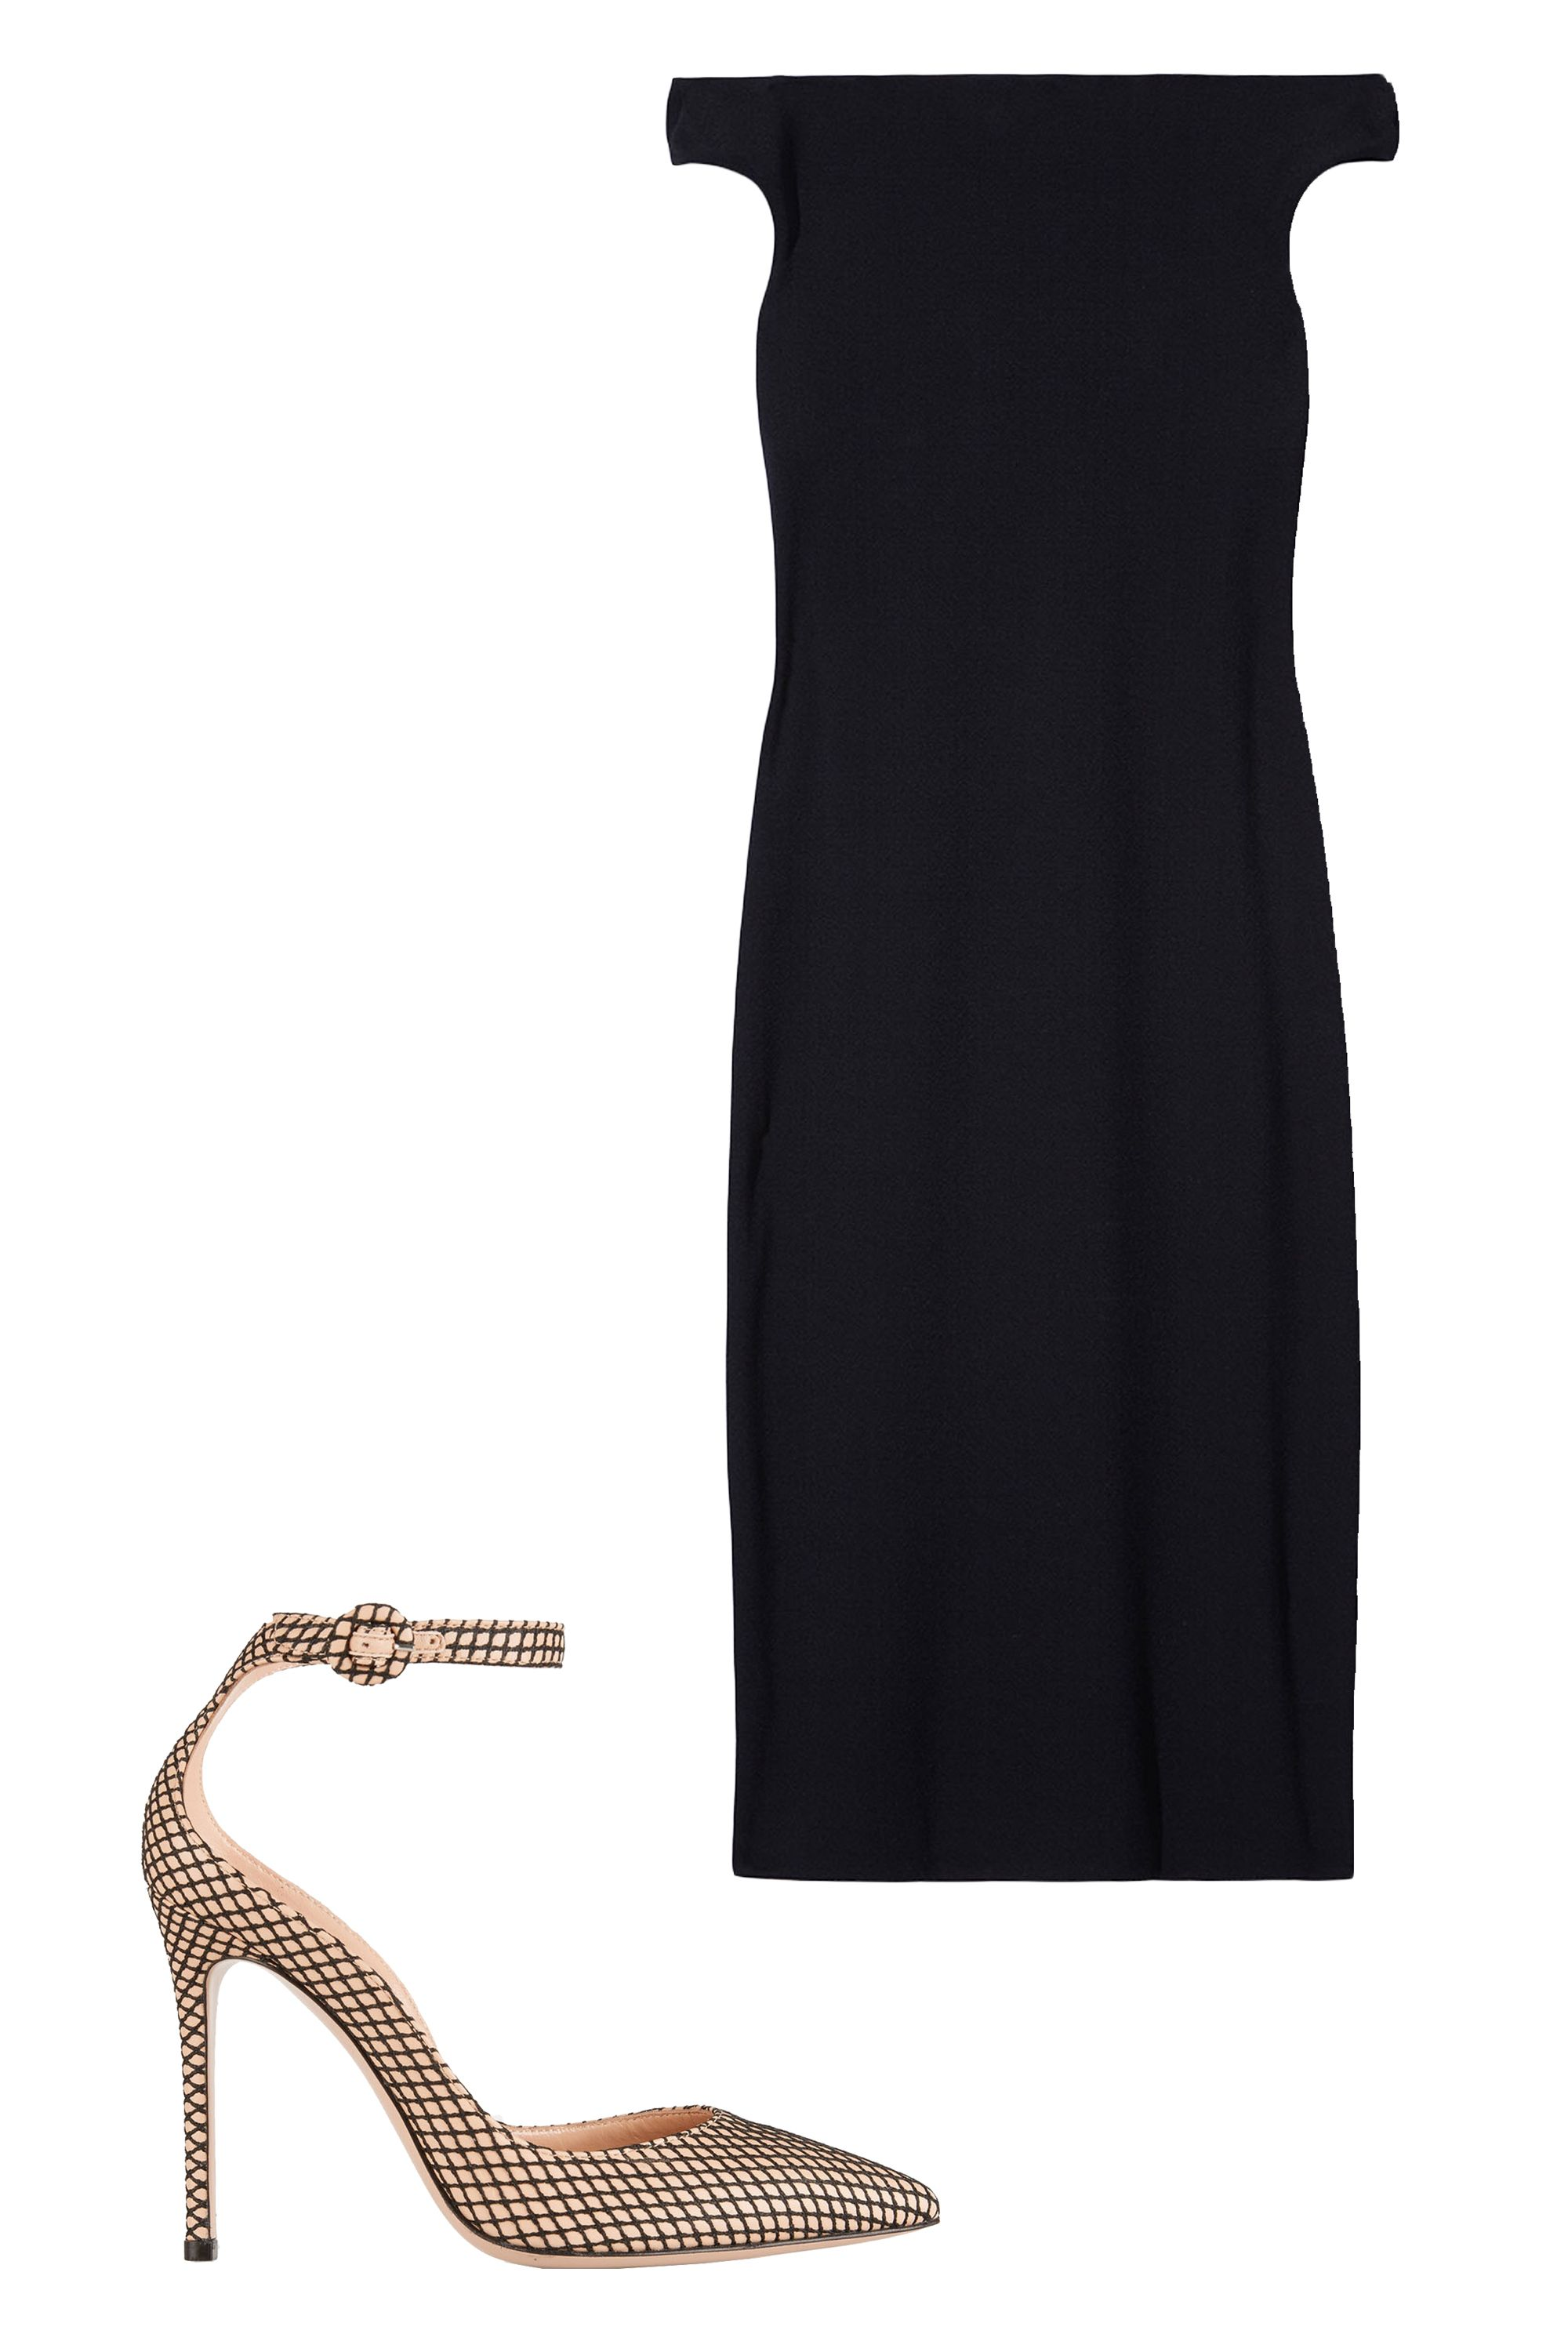 "<p>Never leave home without a sophisticated LBD. It stands alone, or you can slip a lightweight knit on top to turn it into a pencil skirt. <em>Tibi Off-the-Shoulder Midi Dres</em><em>s, $425, <strong><a href=""https://shop.harpersBAZAAR.com/designers/t/tibi/off-the-shoulder-midi-dress-6083.html"" target=""_blank"">shopBAZAAR.com</a>&#x3B; </strong></em><em>Gianvito Rossi Leather and Fishnet Pumps, $845, <strong><a href=""https://www.net-a-porter.com/us/en/product/639383/gianvito_rossi/leather-and-fishnet-pumps"" target=""_blank"">netaporter.com</a></strong>.</em></p>"